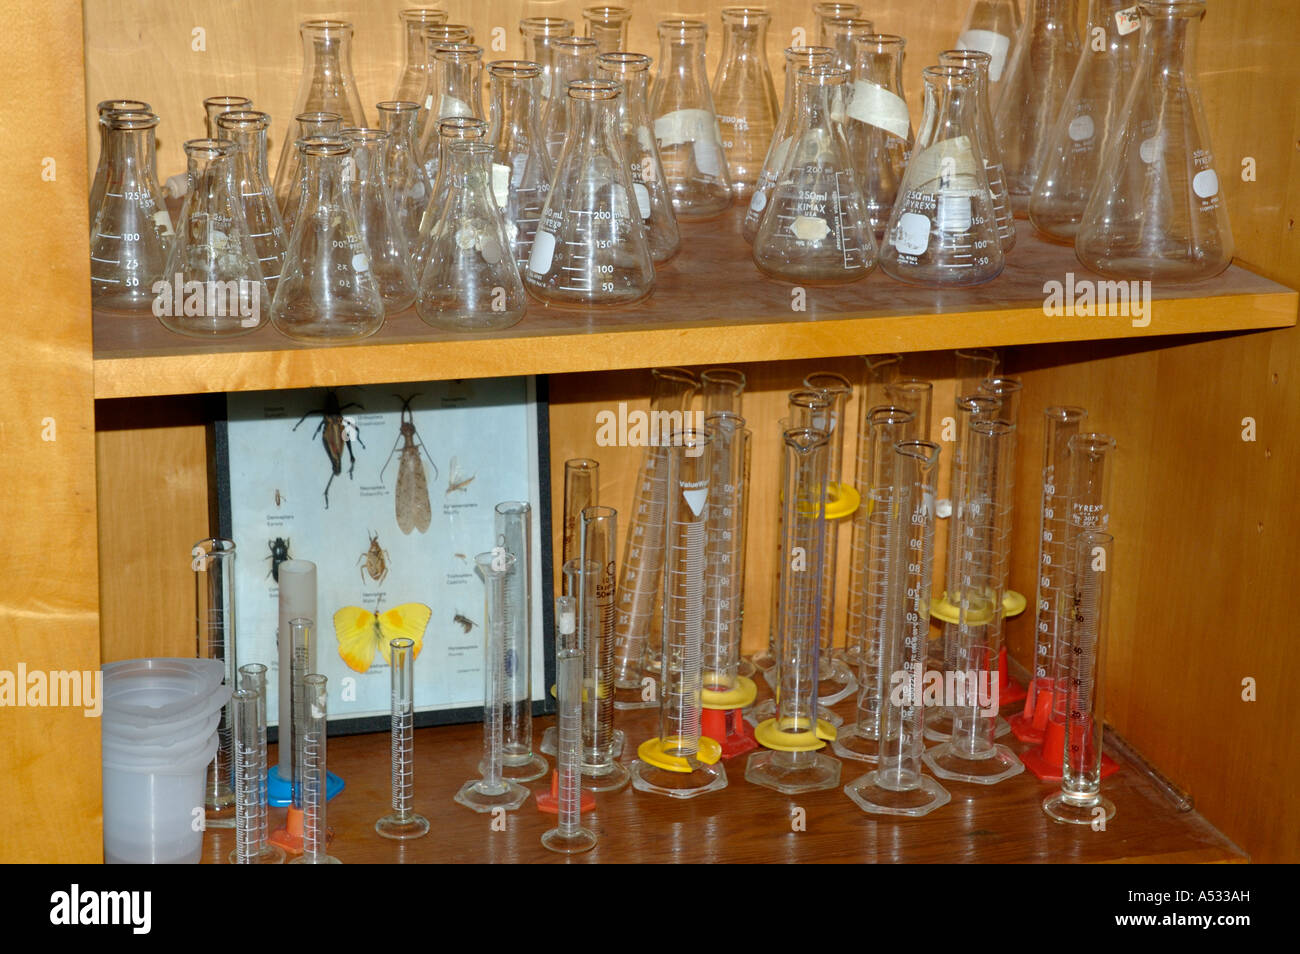 Glassware flasks beakers cylinders on shelves in school biology classroom Stock Photo